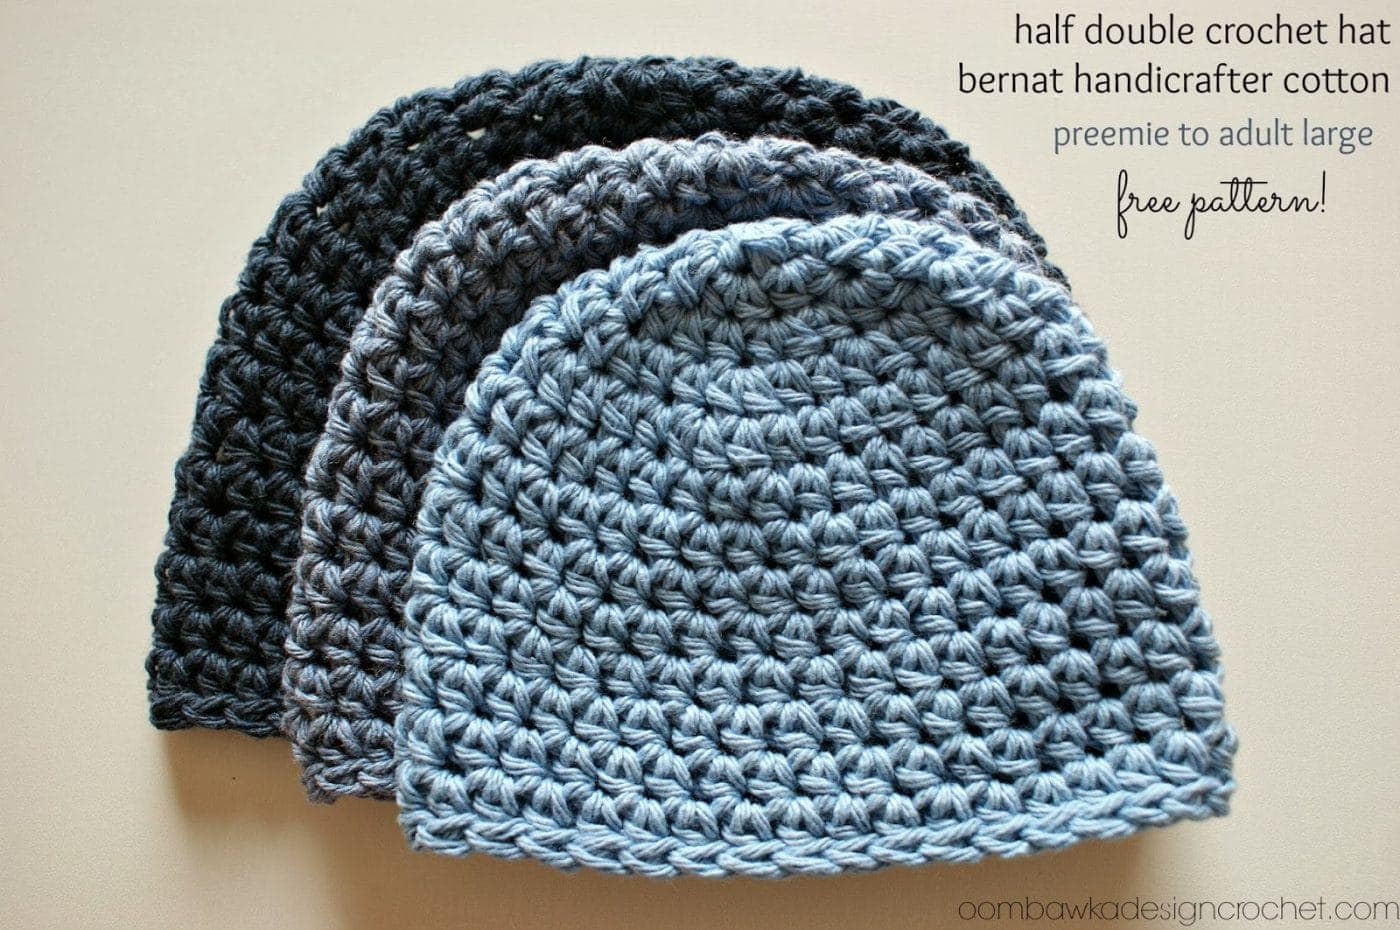 Crochet Hat Patterns : ... Double Crochet Hat Pattern #2 Free Pattern ? Oombawka Design Crochet